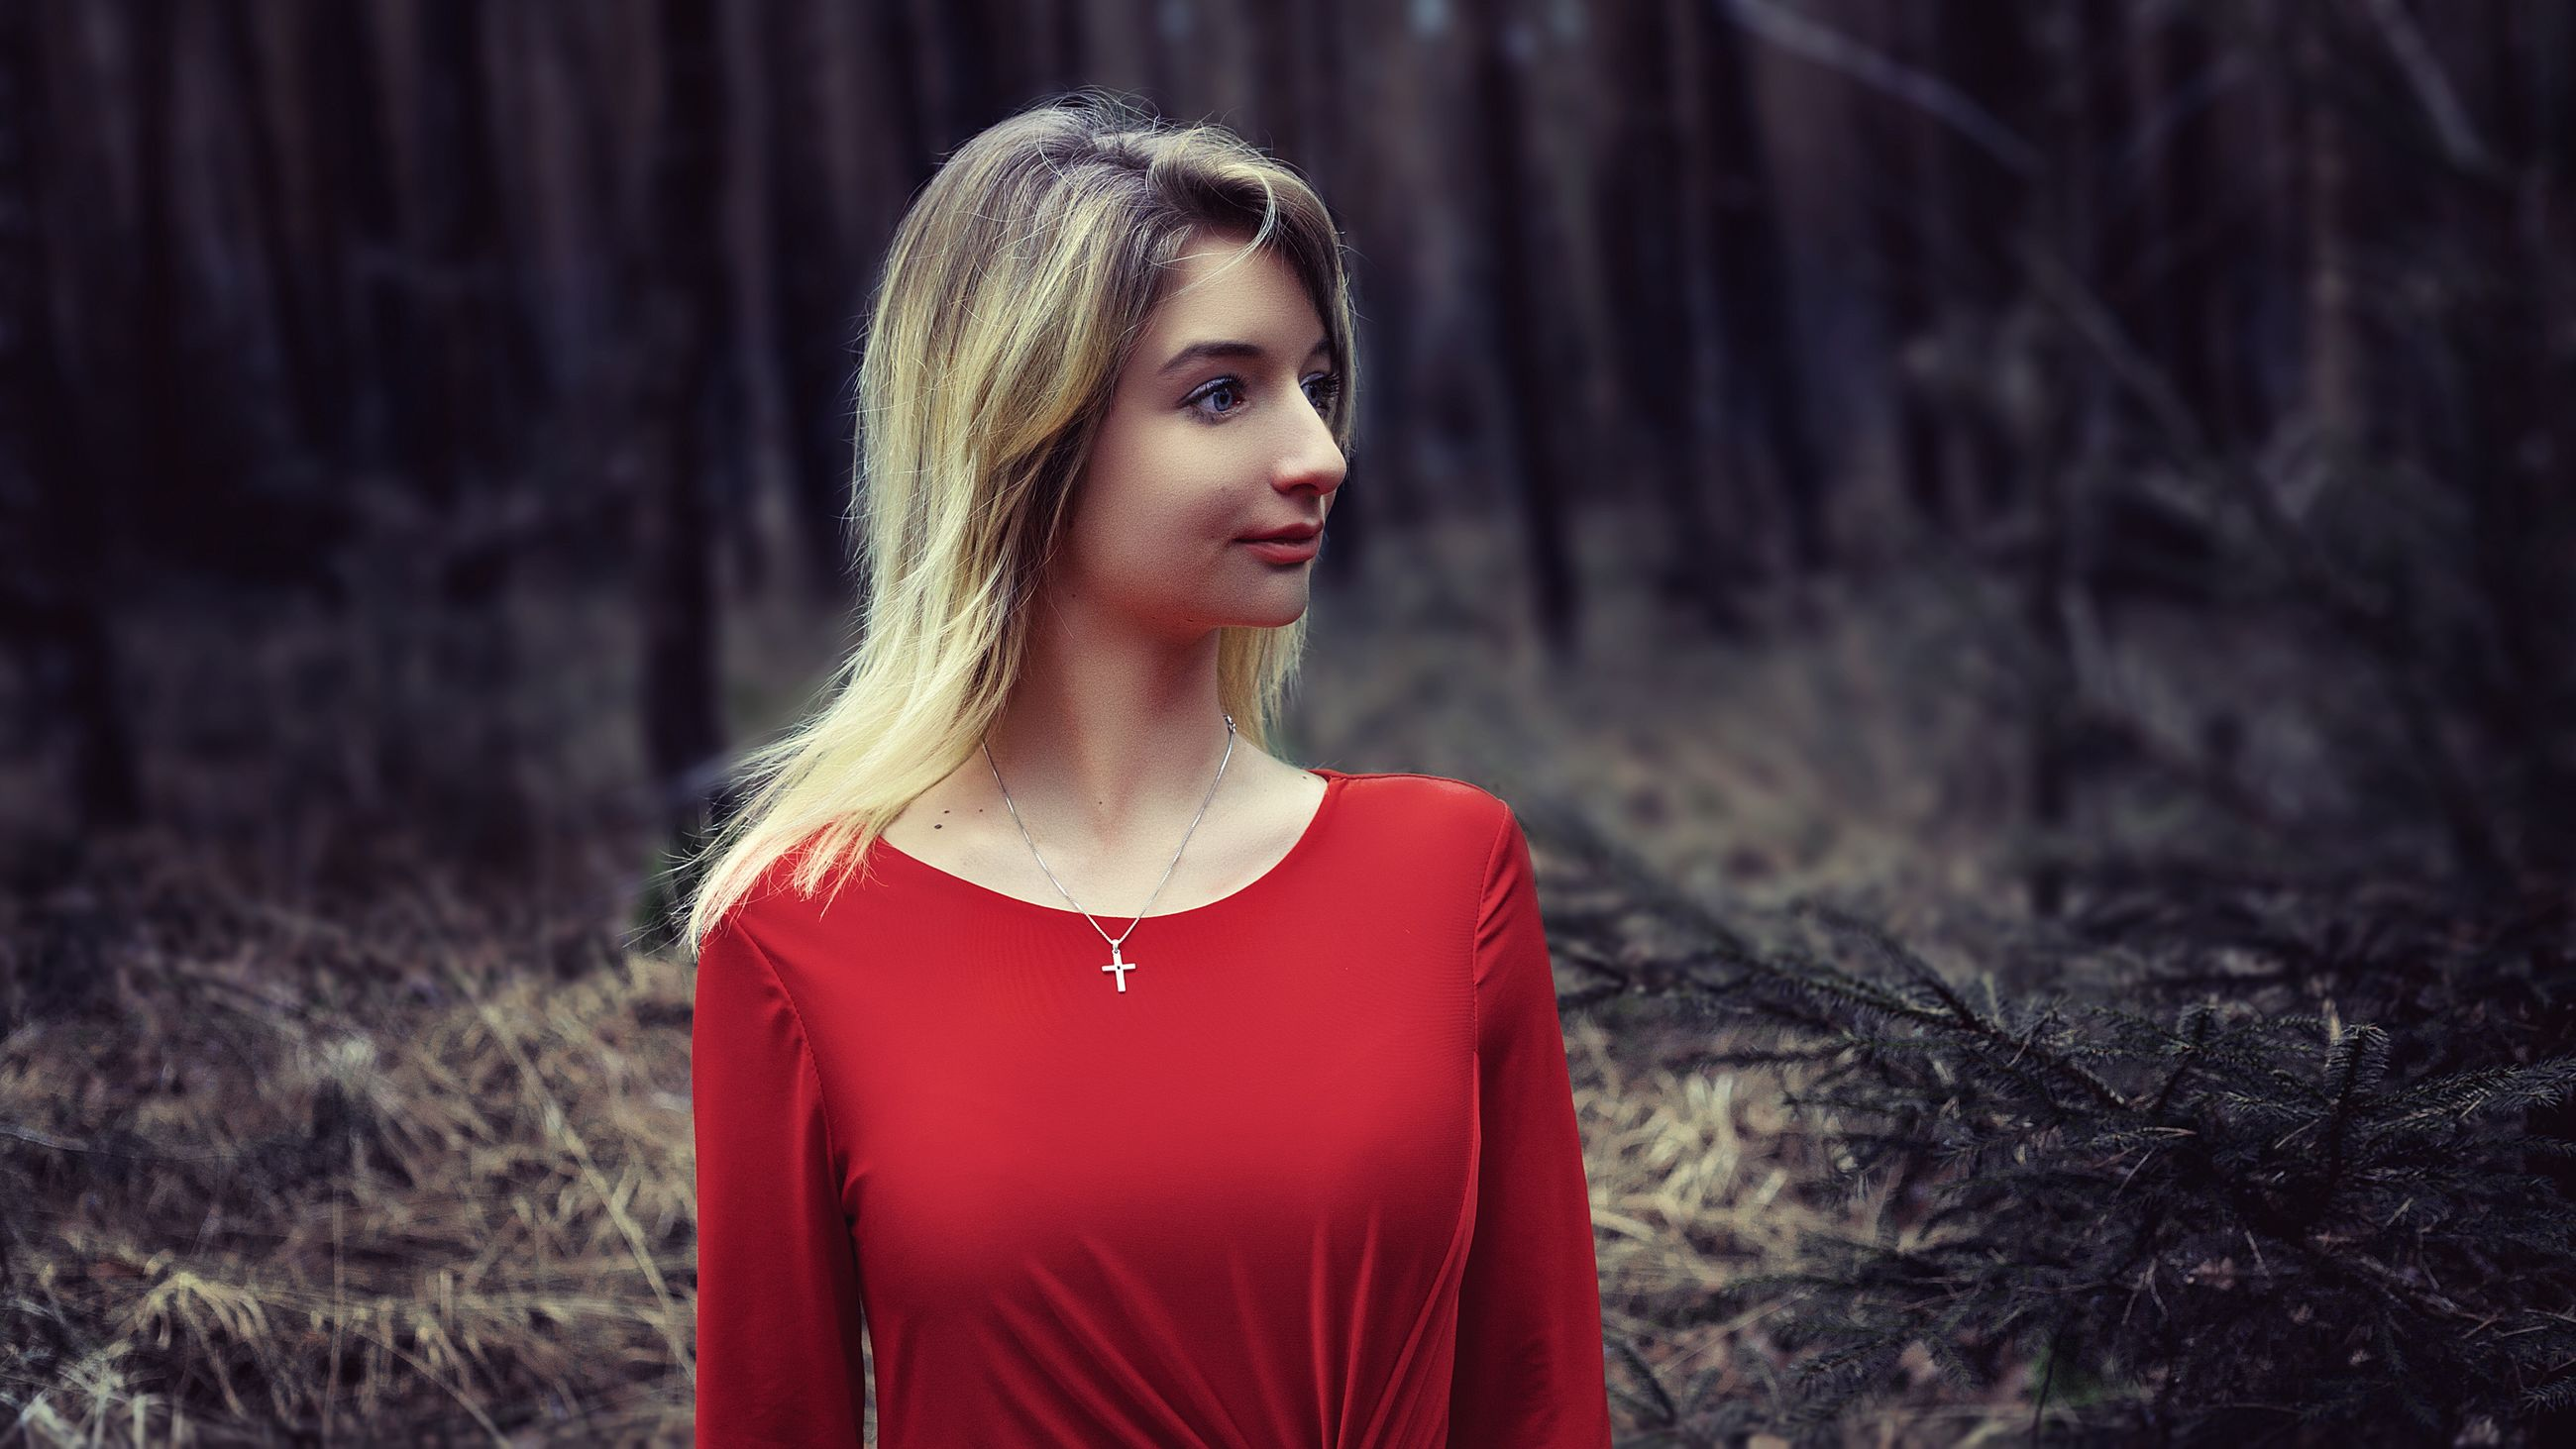 real people, one person, young adult, sweater, growth, happiness, portrait, young women, beautiful woman, day, nature, outdoors, tree, one woman only, people